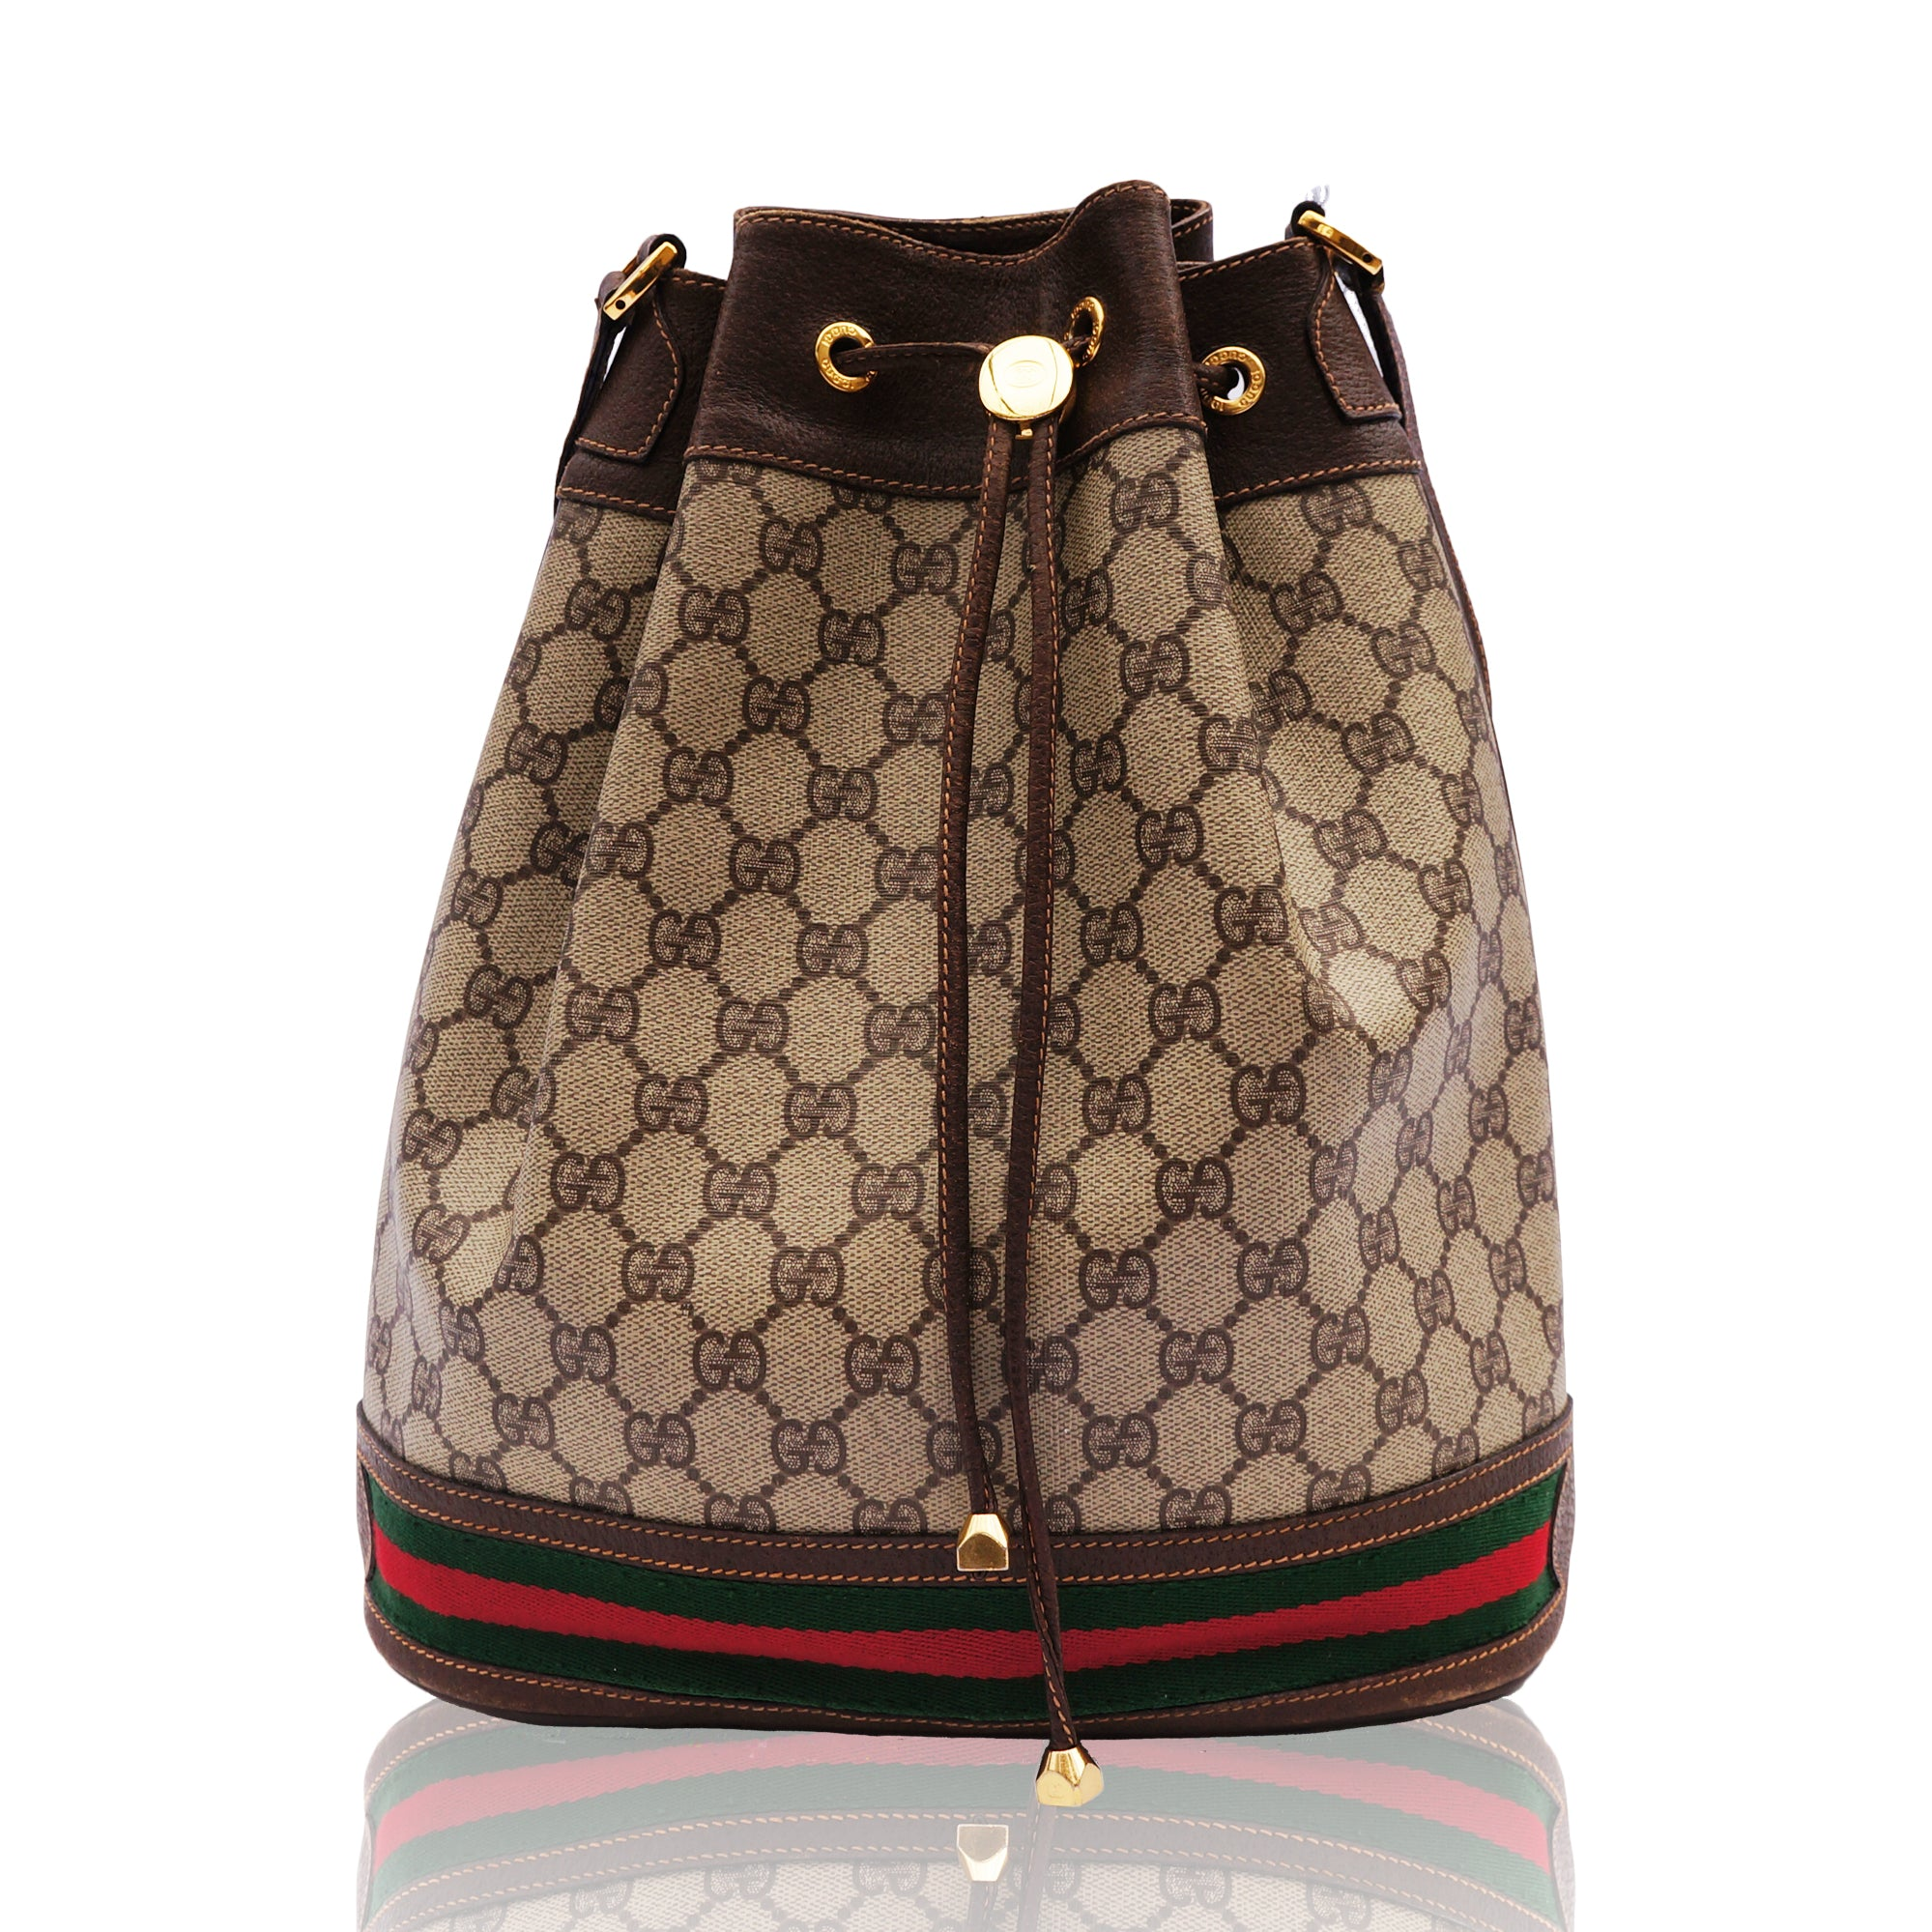 afe5d1b675a5 GUCCI WEB SUPREME BUCKET SHOULDER BAG Shop online the best value on authentic  designer used preowned ...